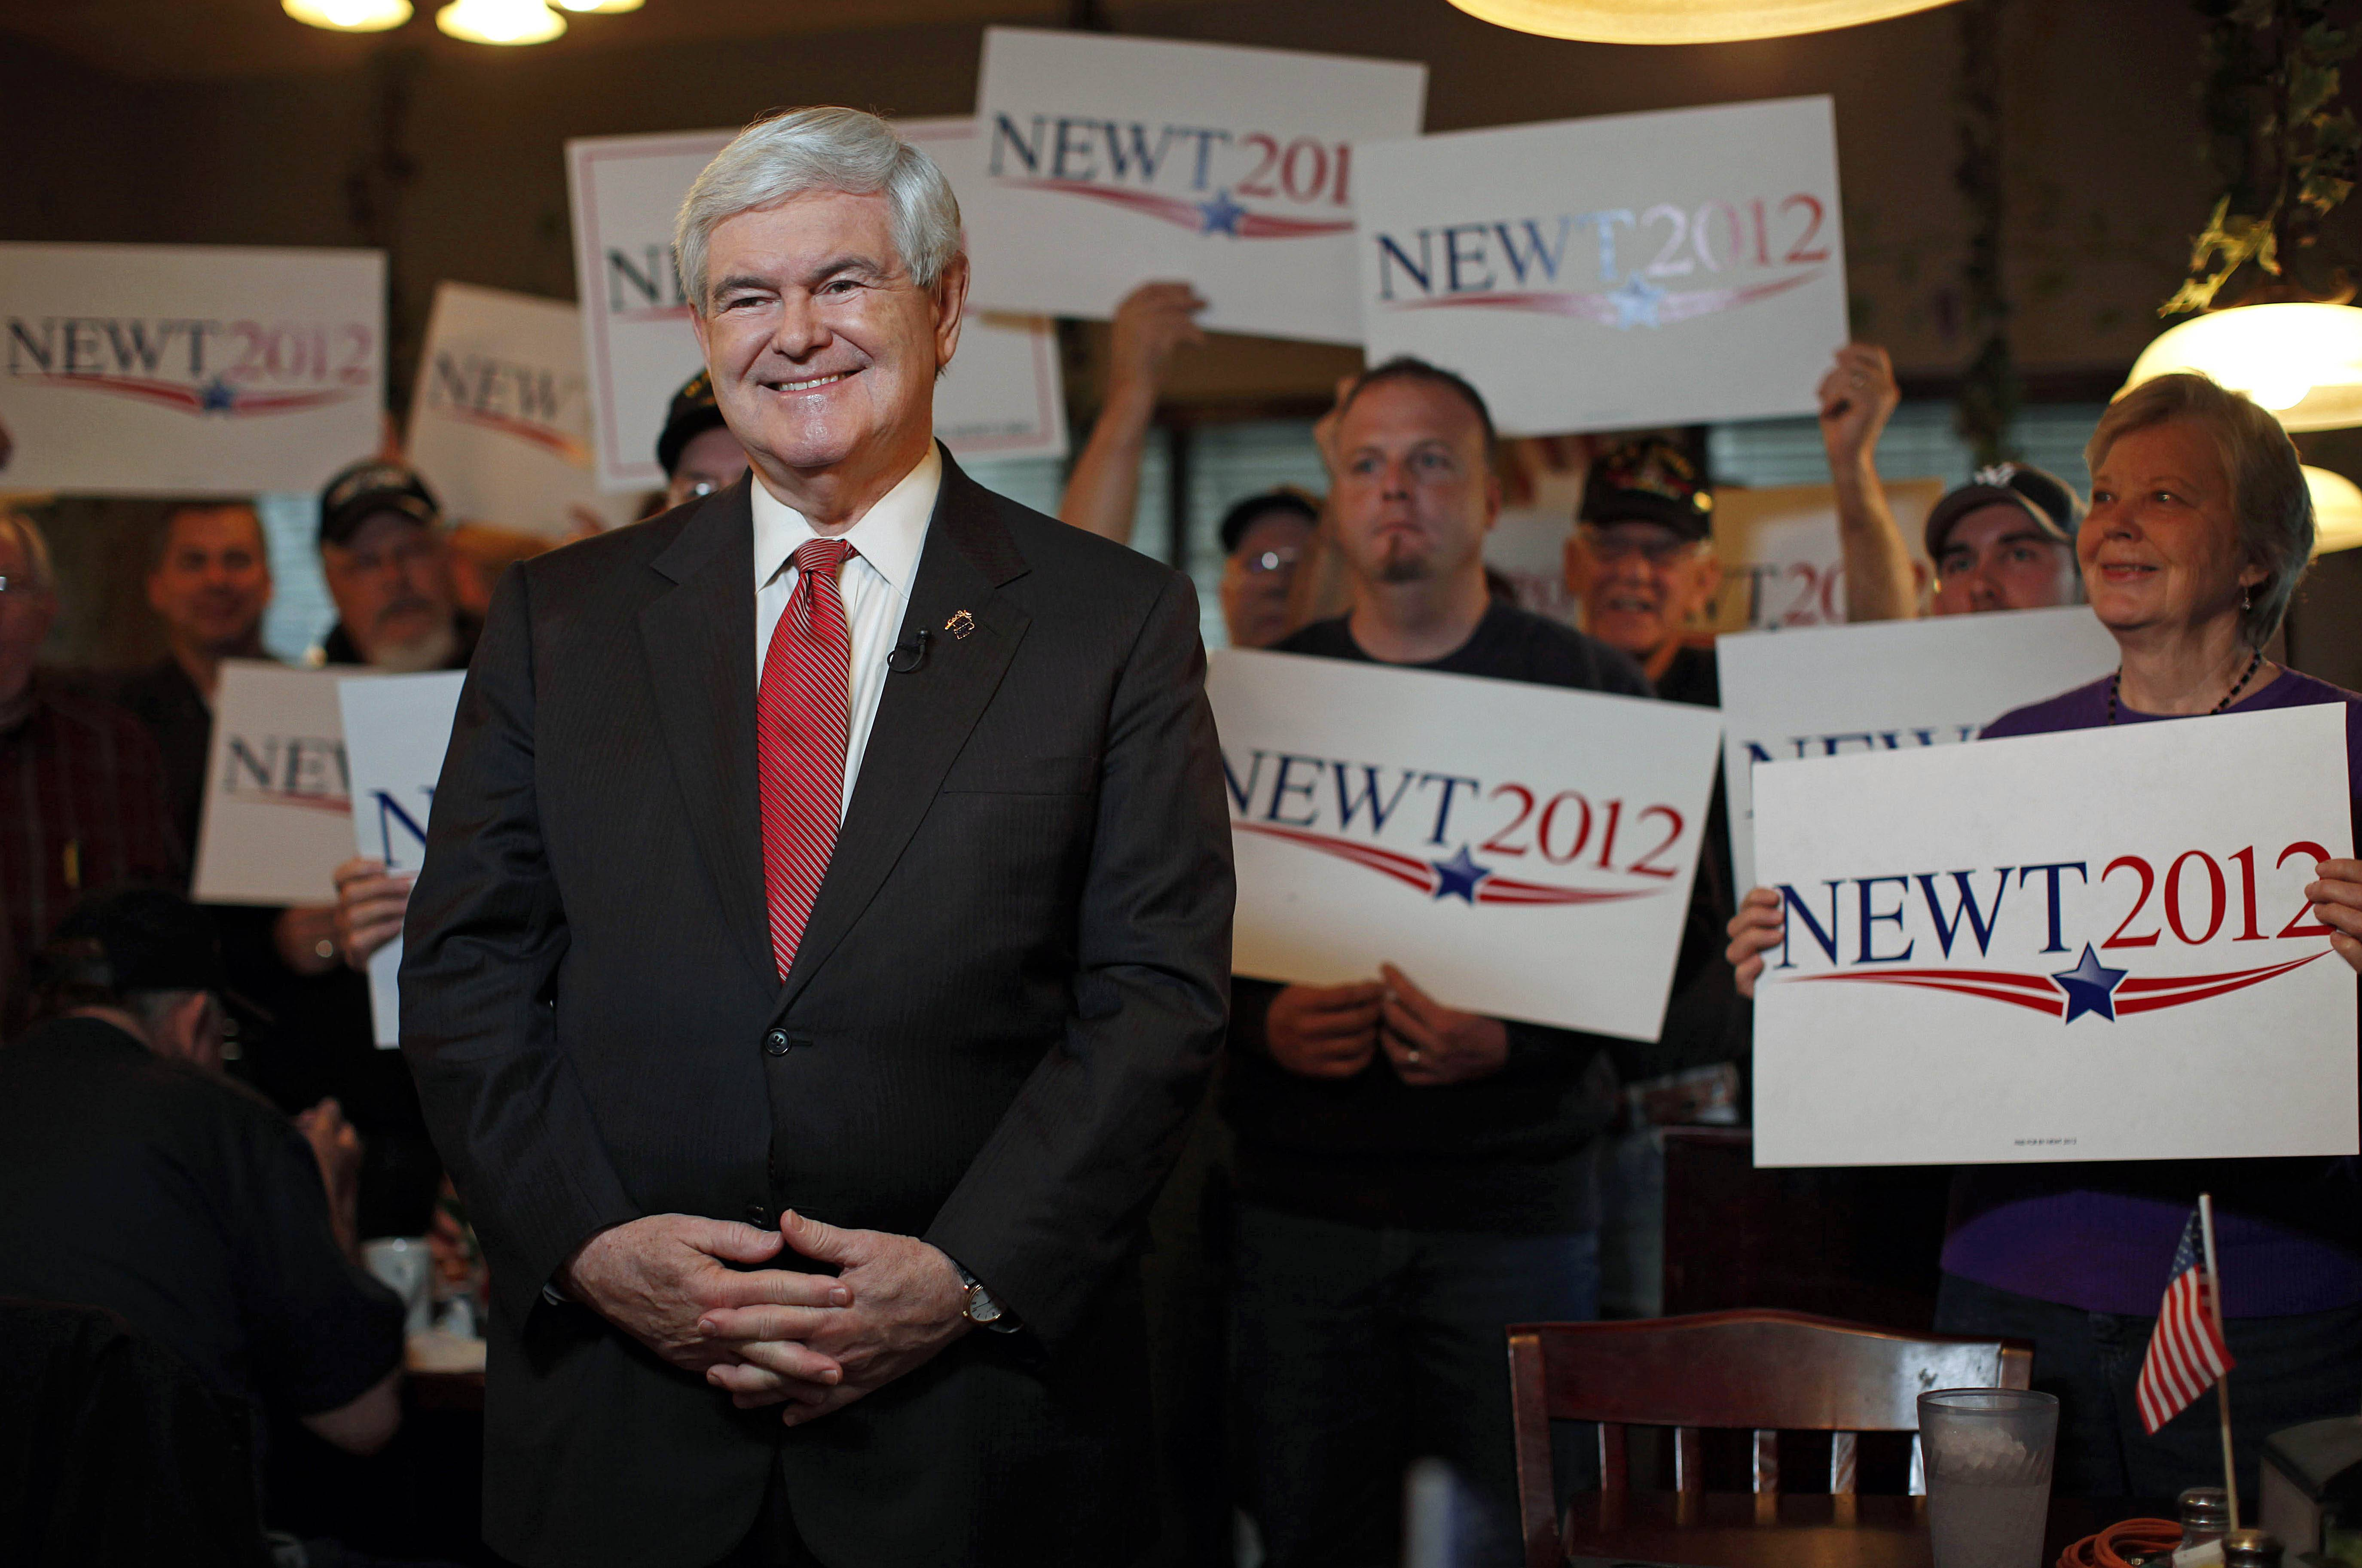 Exit polls in South Carolina show Newt Gingrich leading.